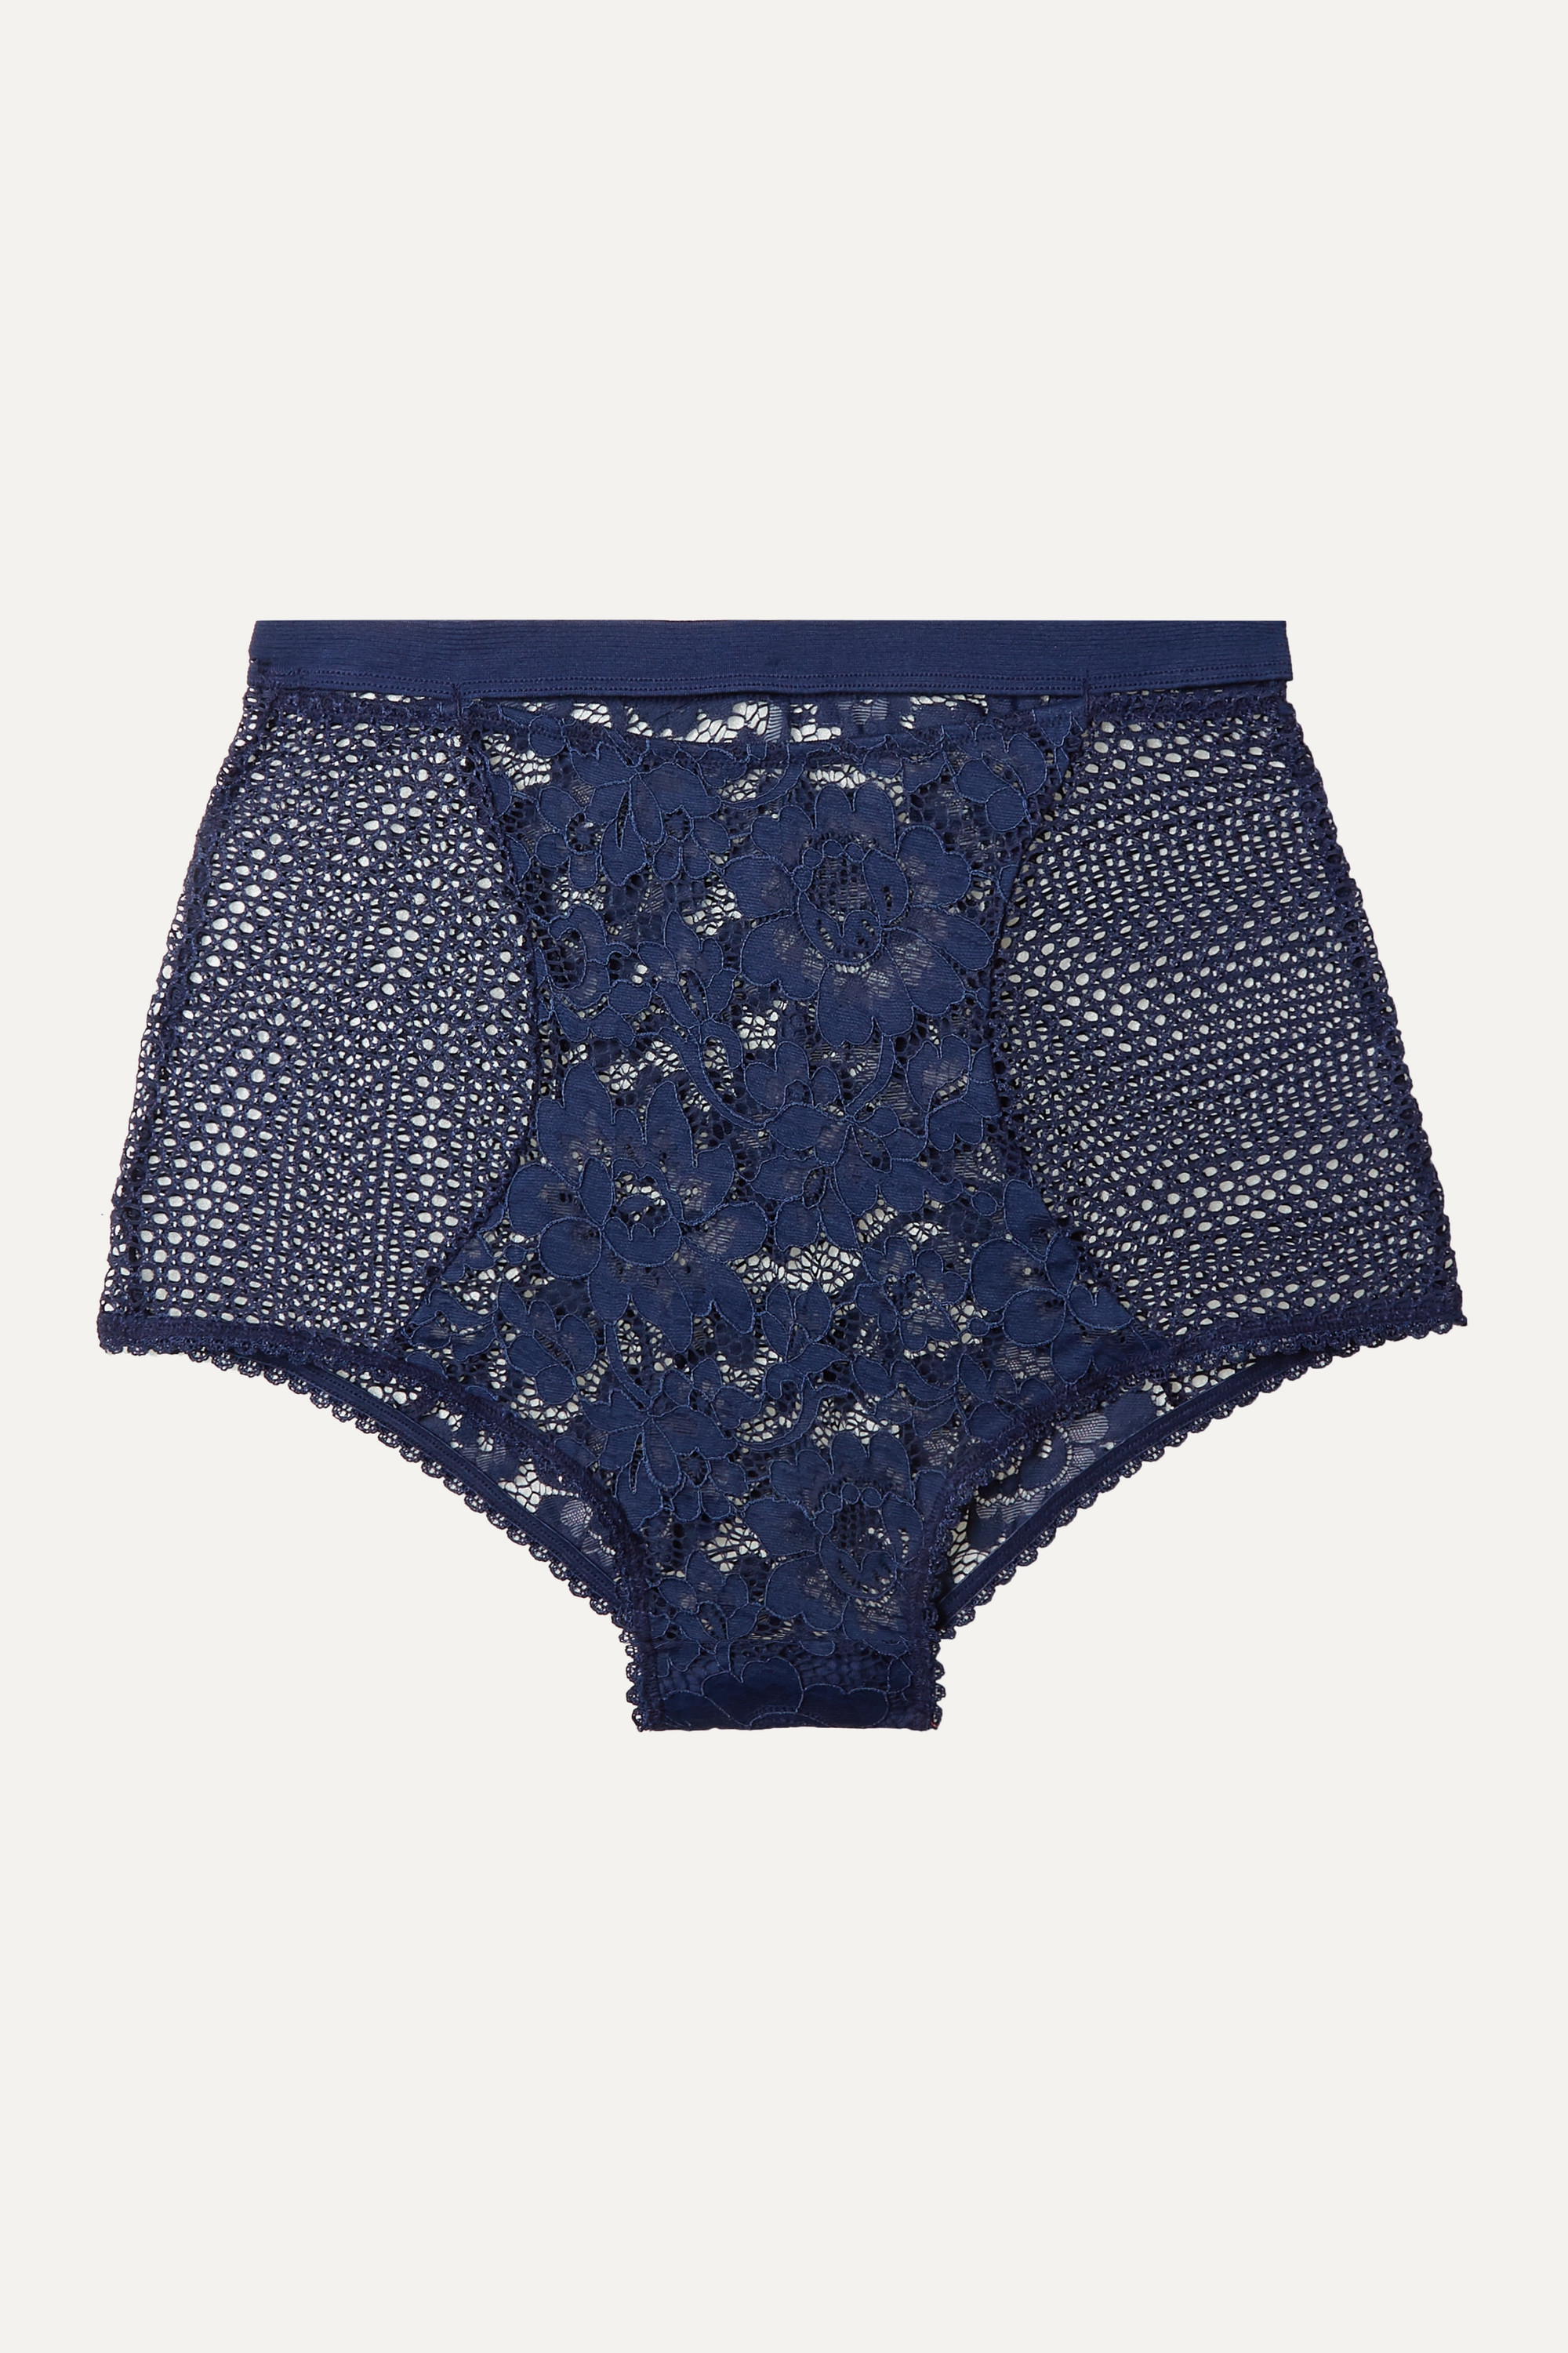 ELSE Petunia stretch-mesh and corded lace briefs